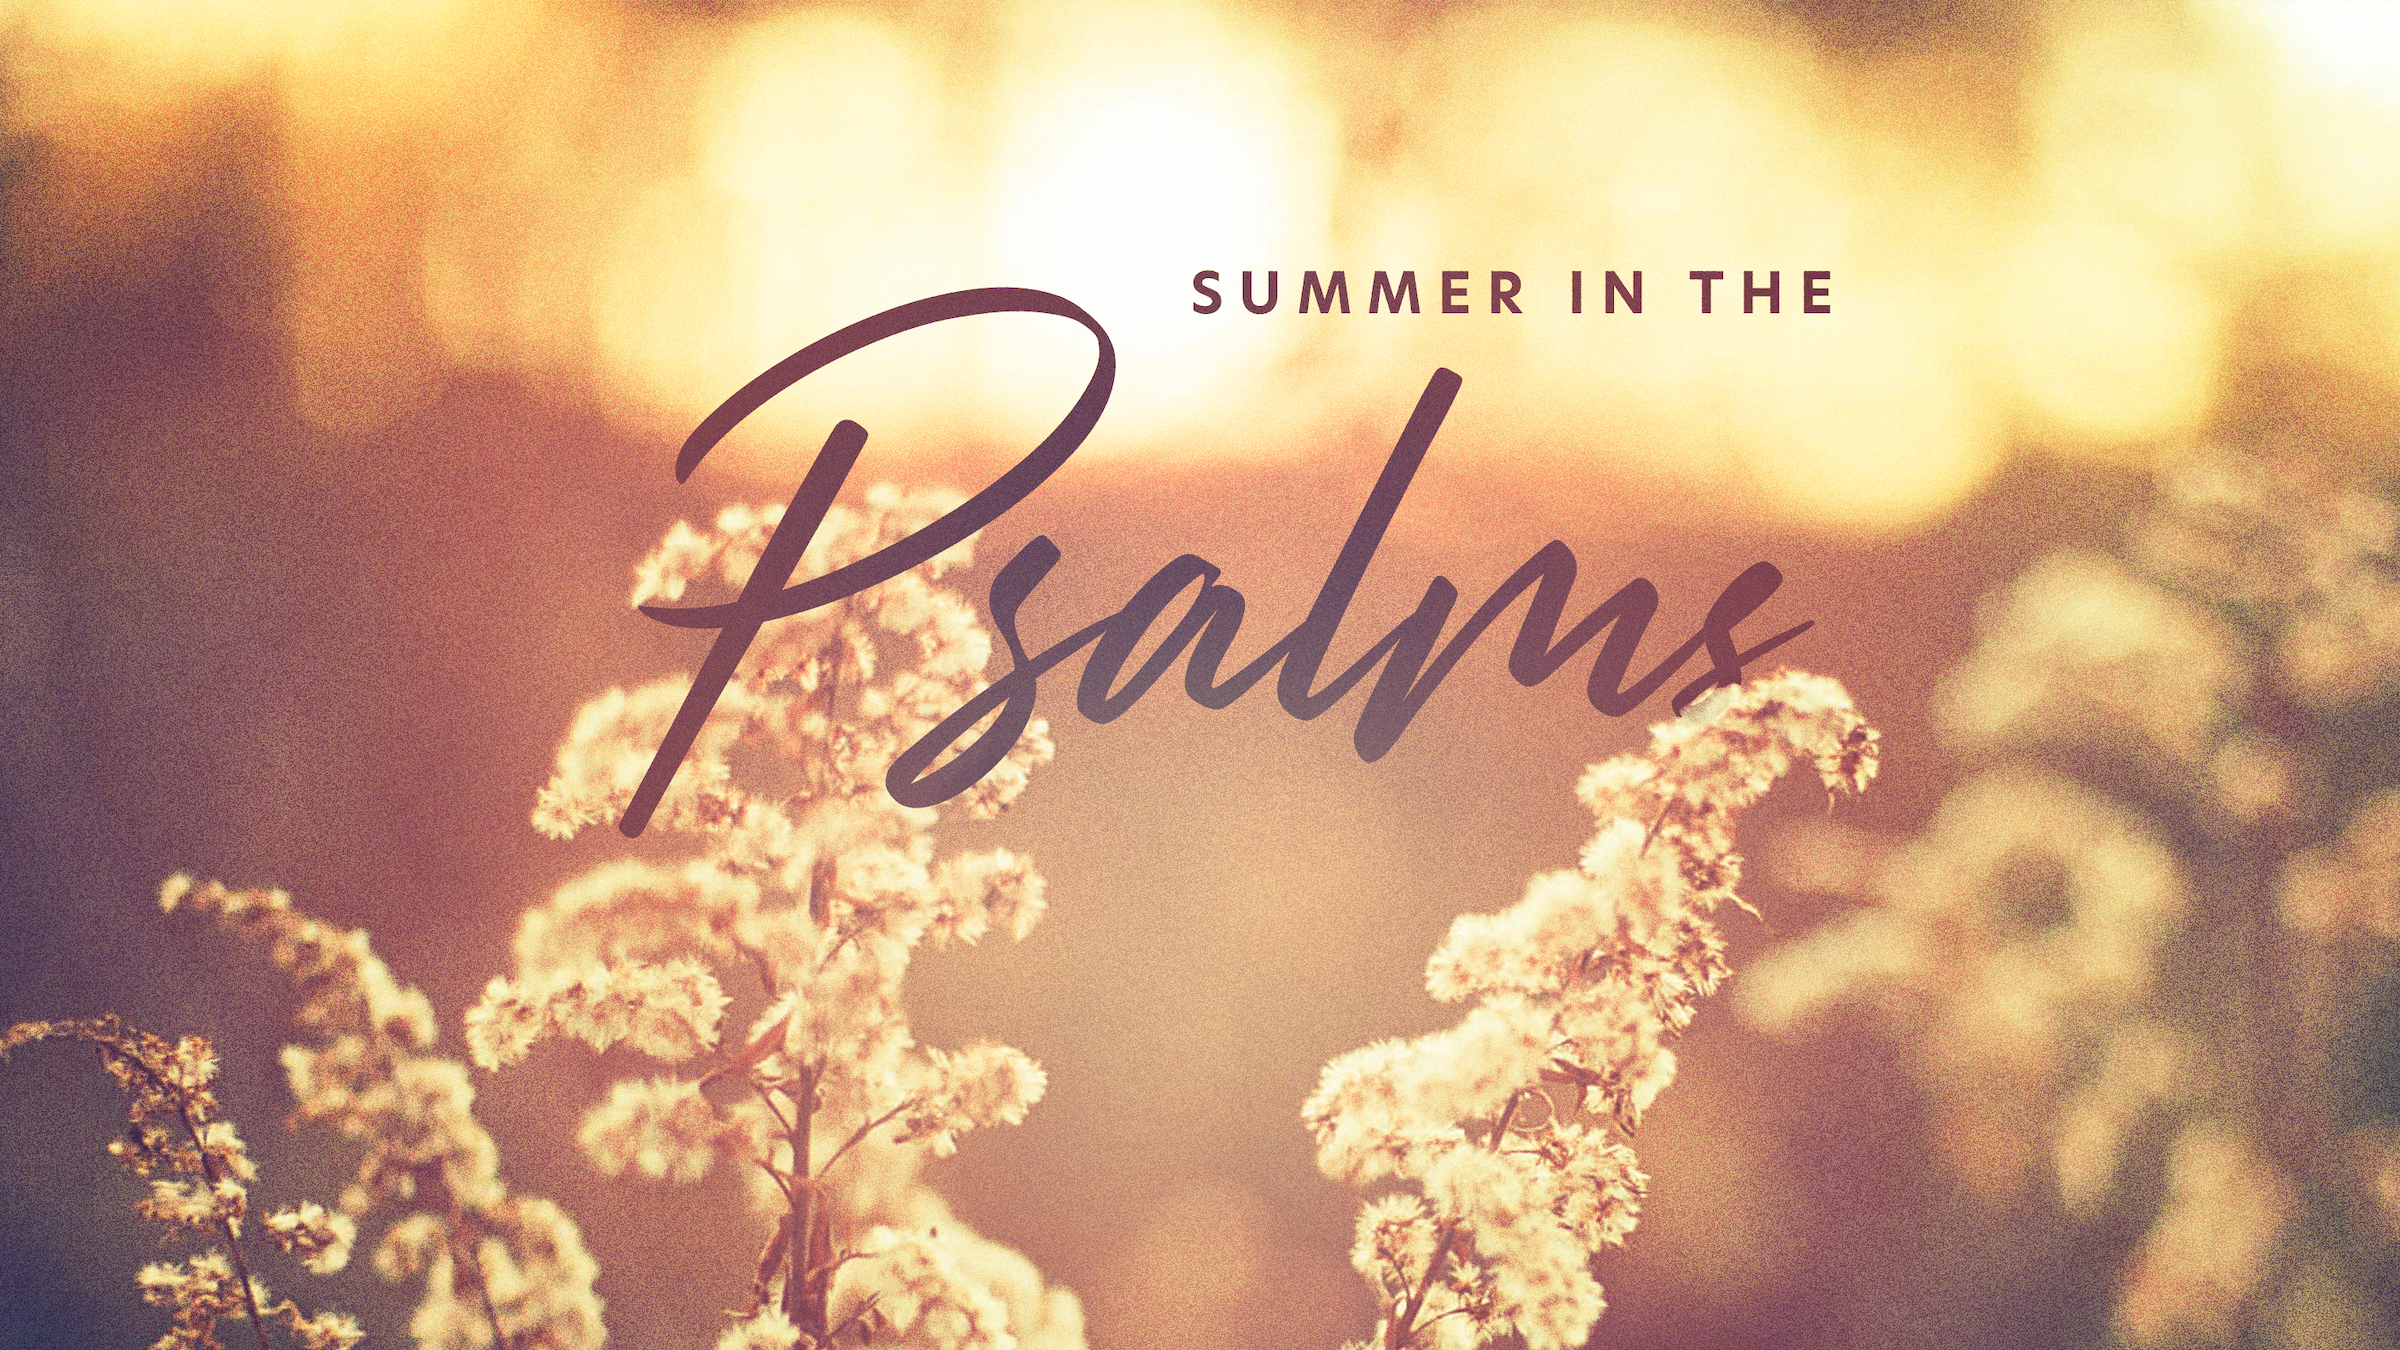 Summer in the Psalms 2